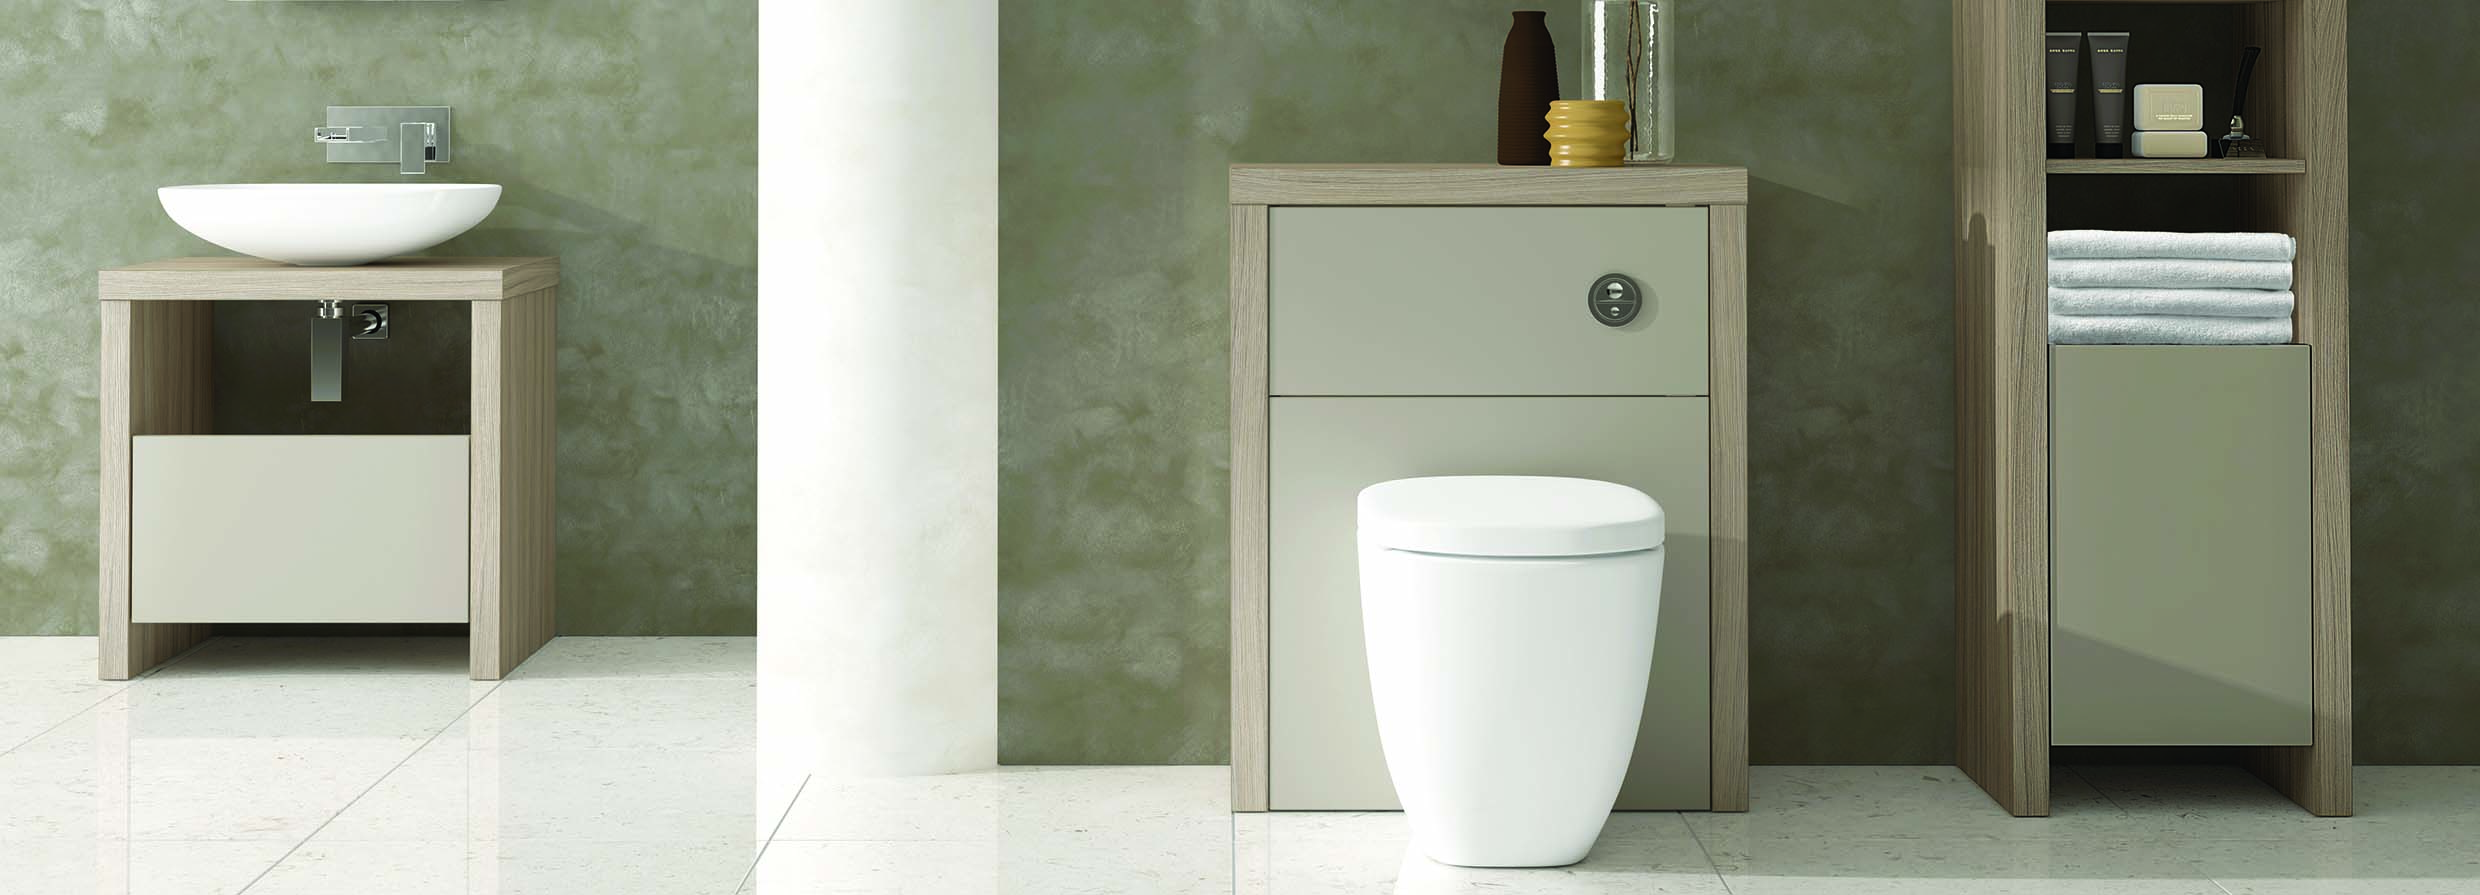 Shaun Davies bathroom products top